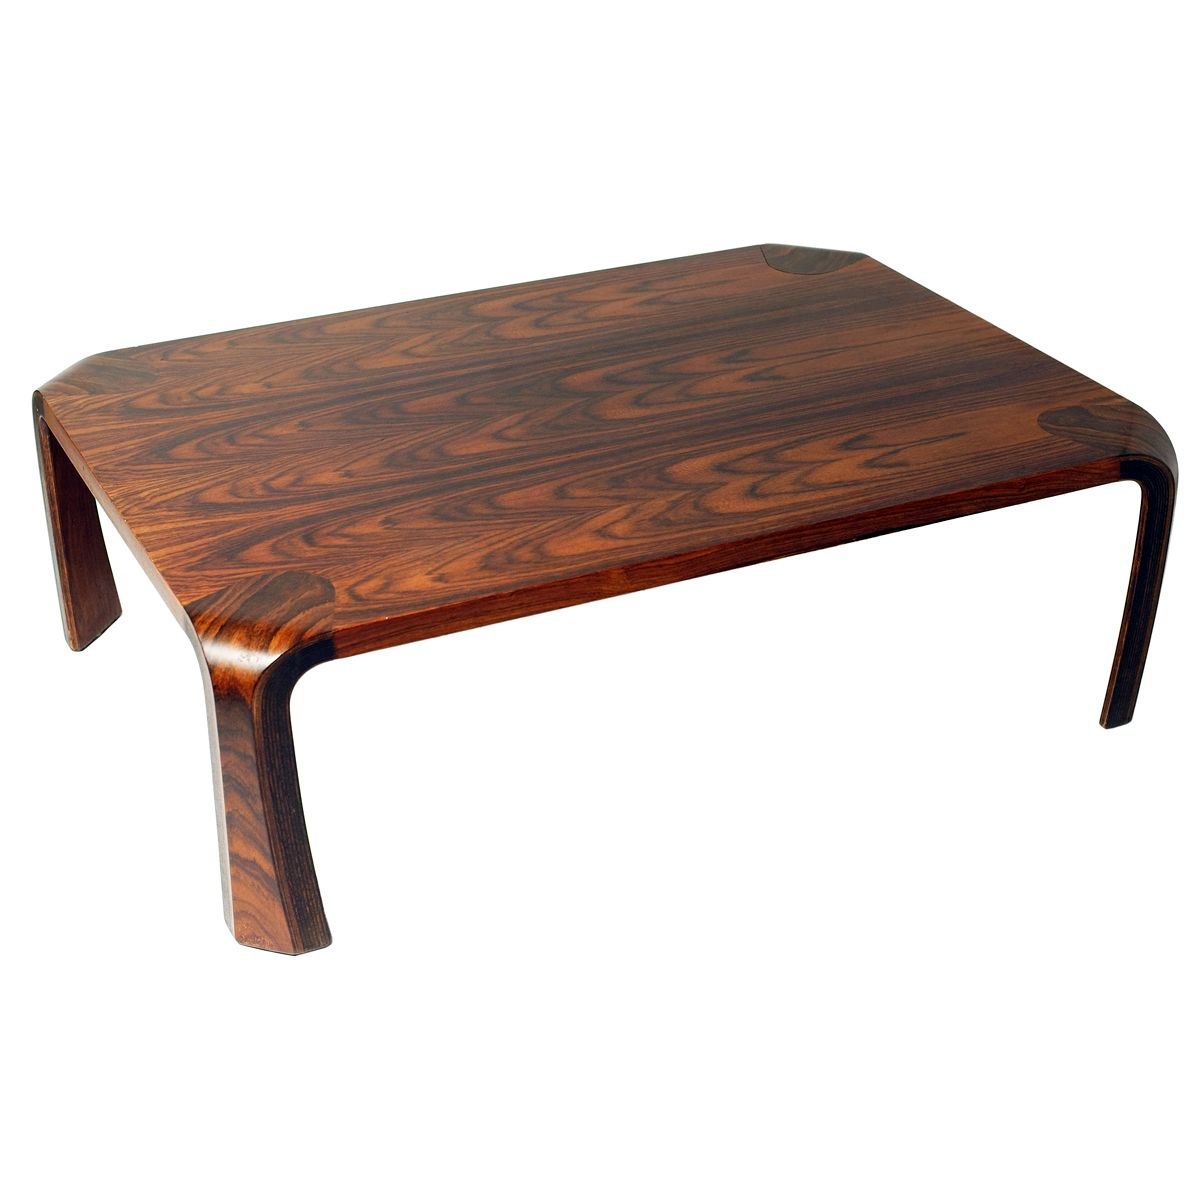 Japanese Coffee Tables Vintage Japanese Coffee Table By Inui Saburou For Sale At Pamono